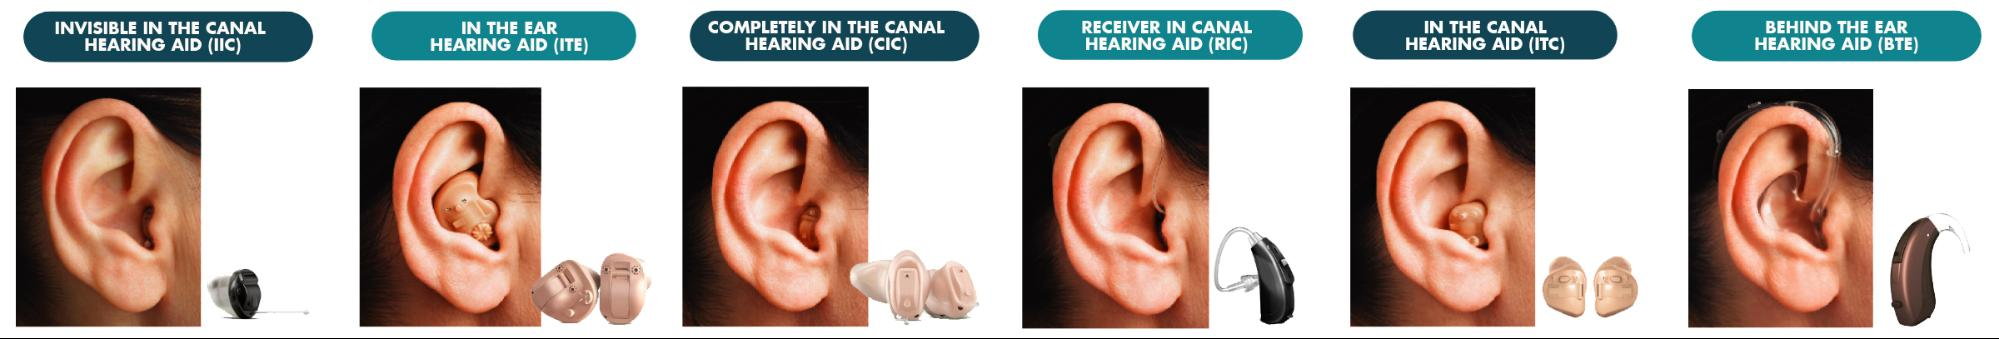 Common Hearing Loss Myths Busted